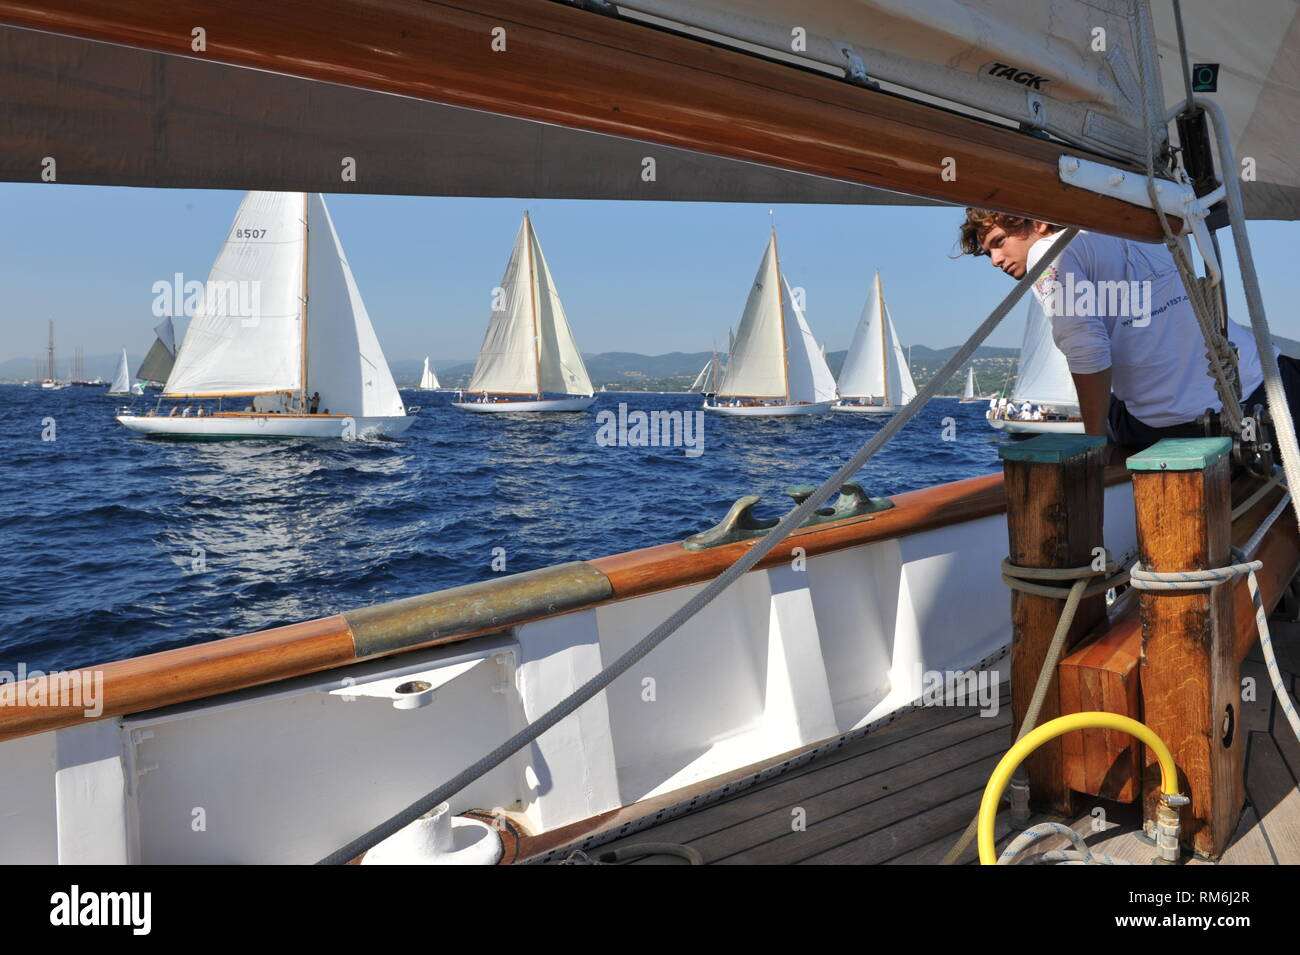 An exciting start to the race from on board classic schooner Orianda Stock Photo